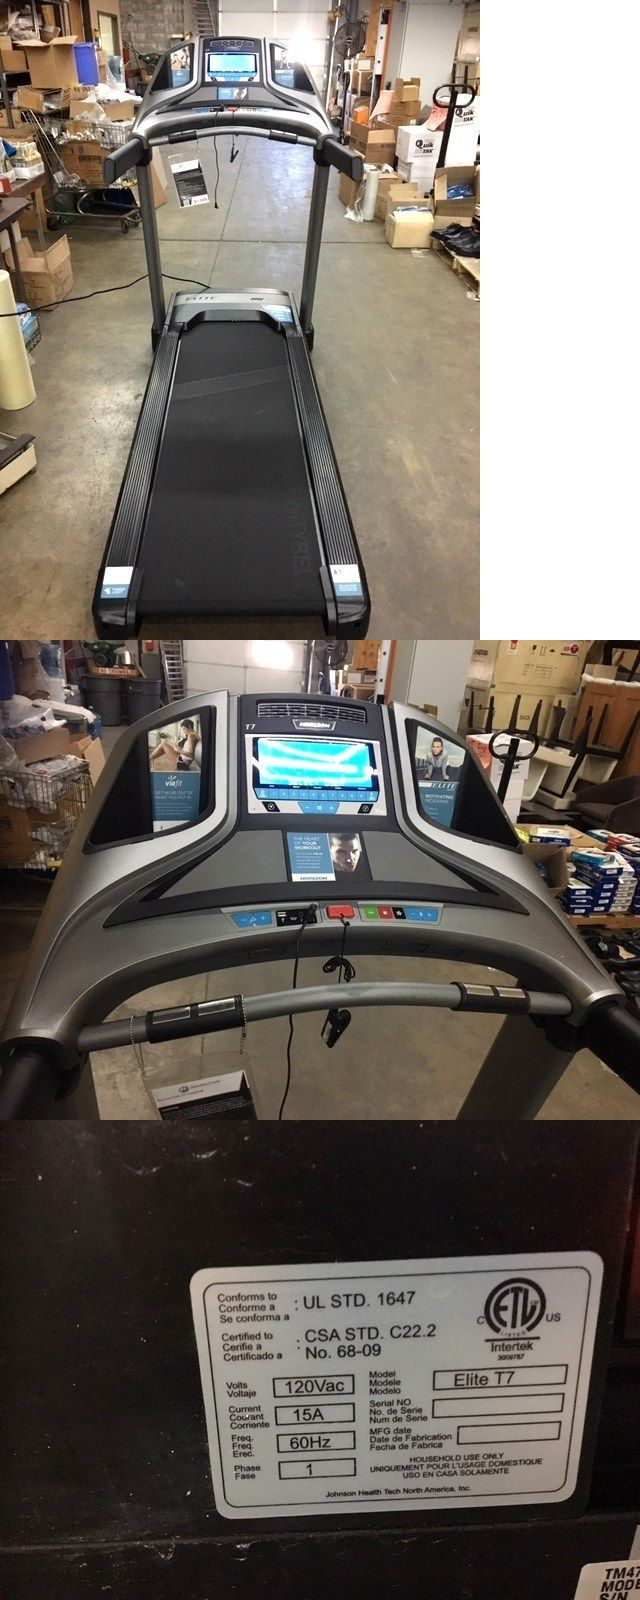 Best ideas about foldable treadmill on pinterest home